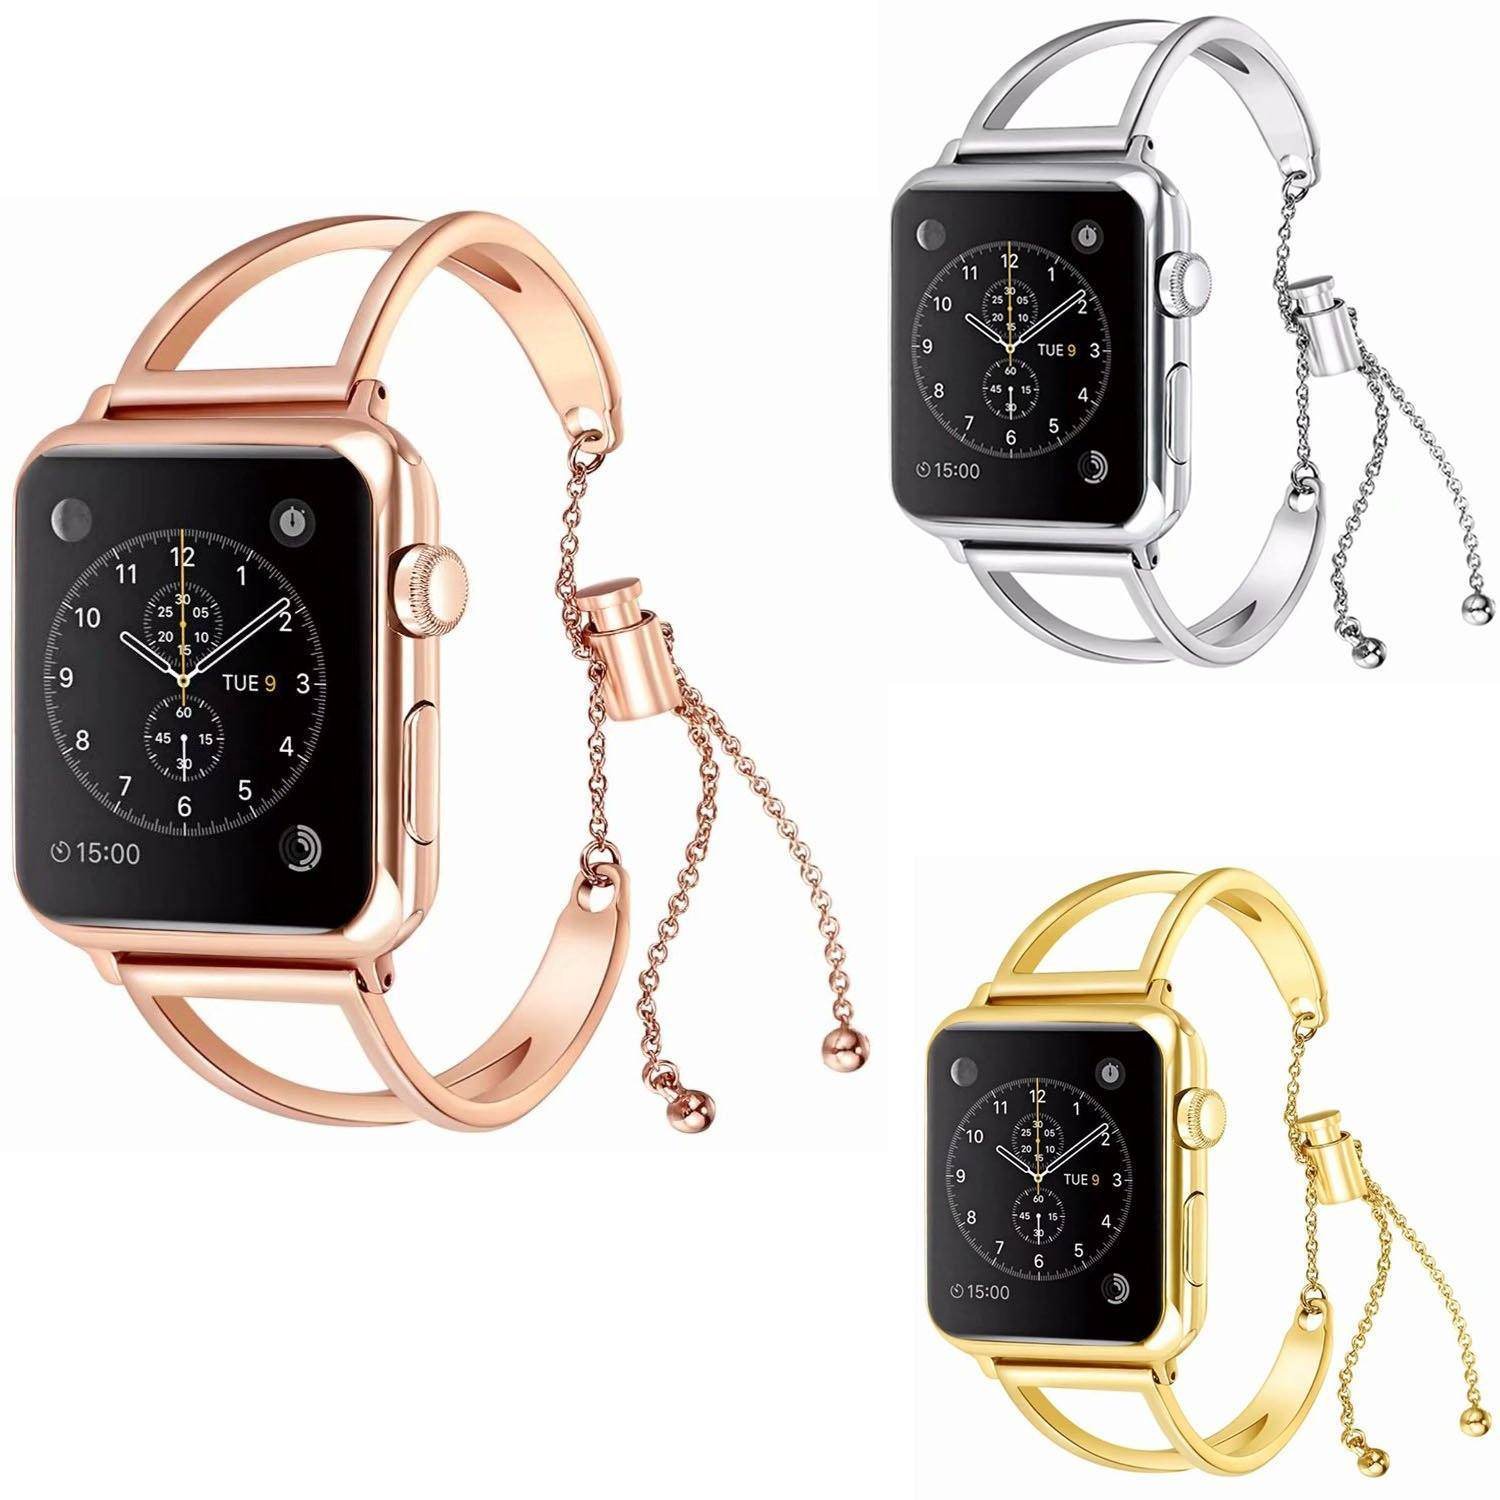 Apple Watch Bands Adjustable Stainless Steel Strap / iWatch series 3 2 1 (38mm/42mm) - AmericanGalore